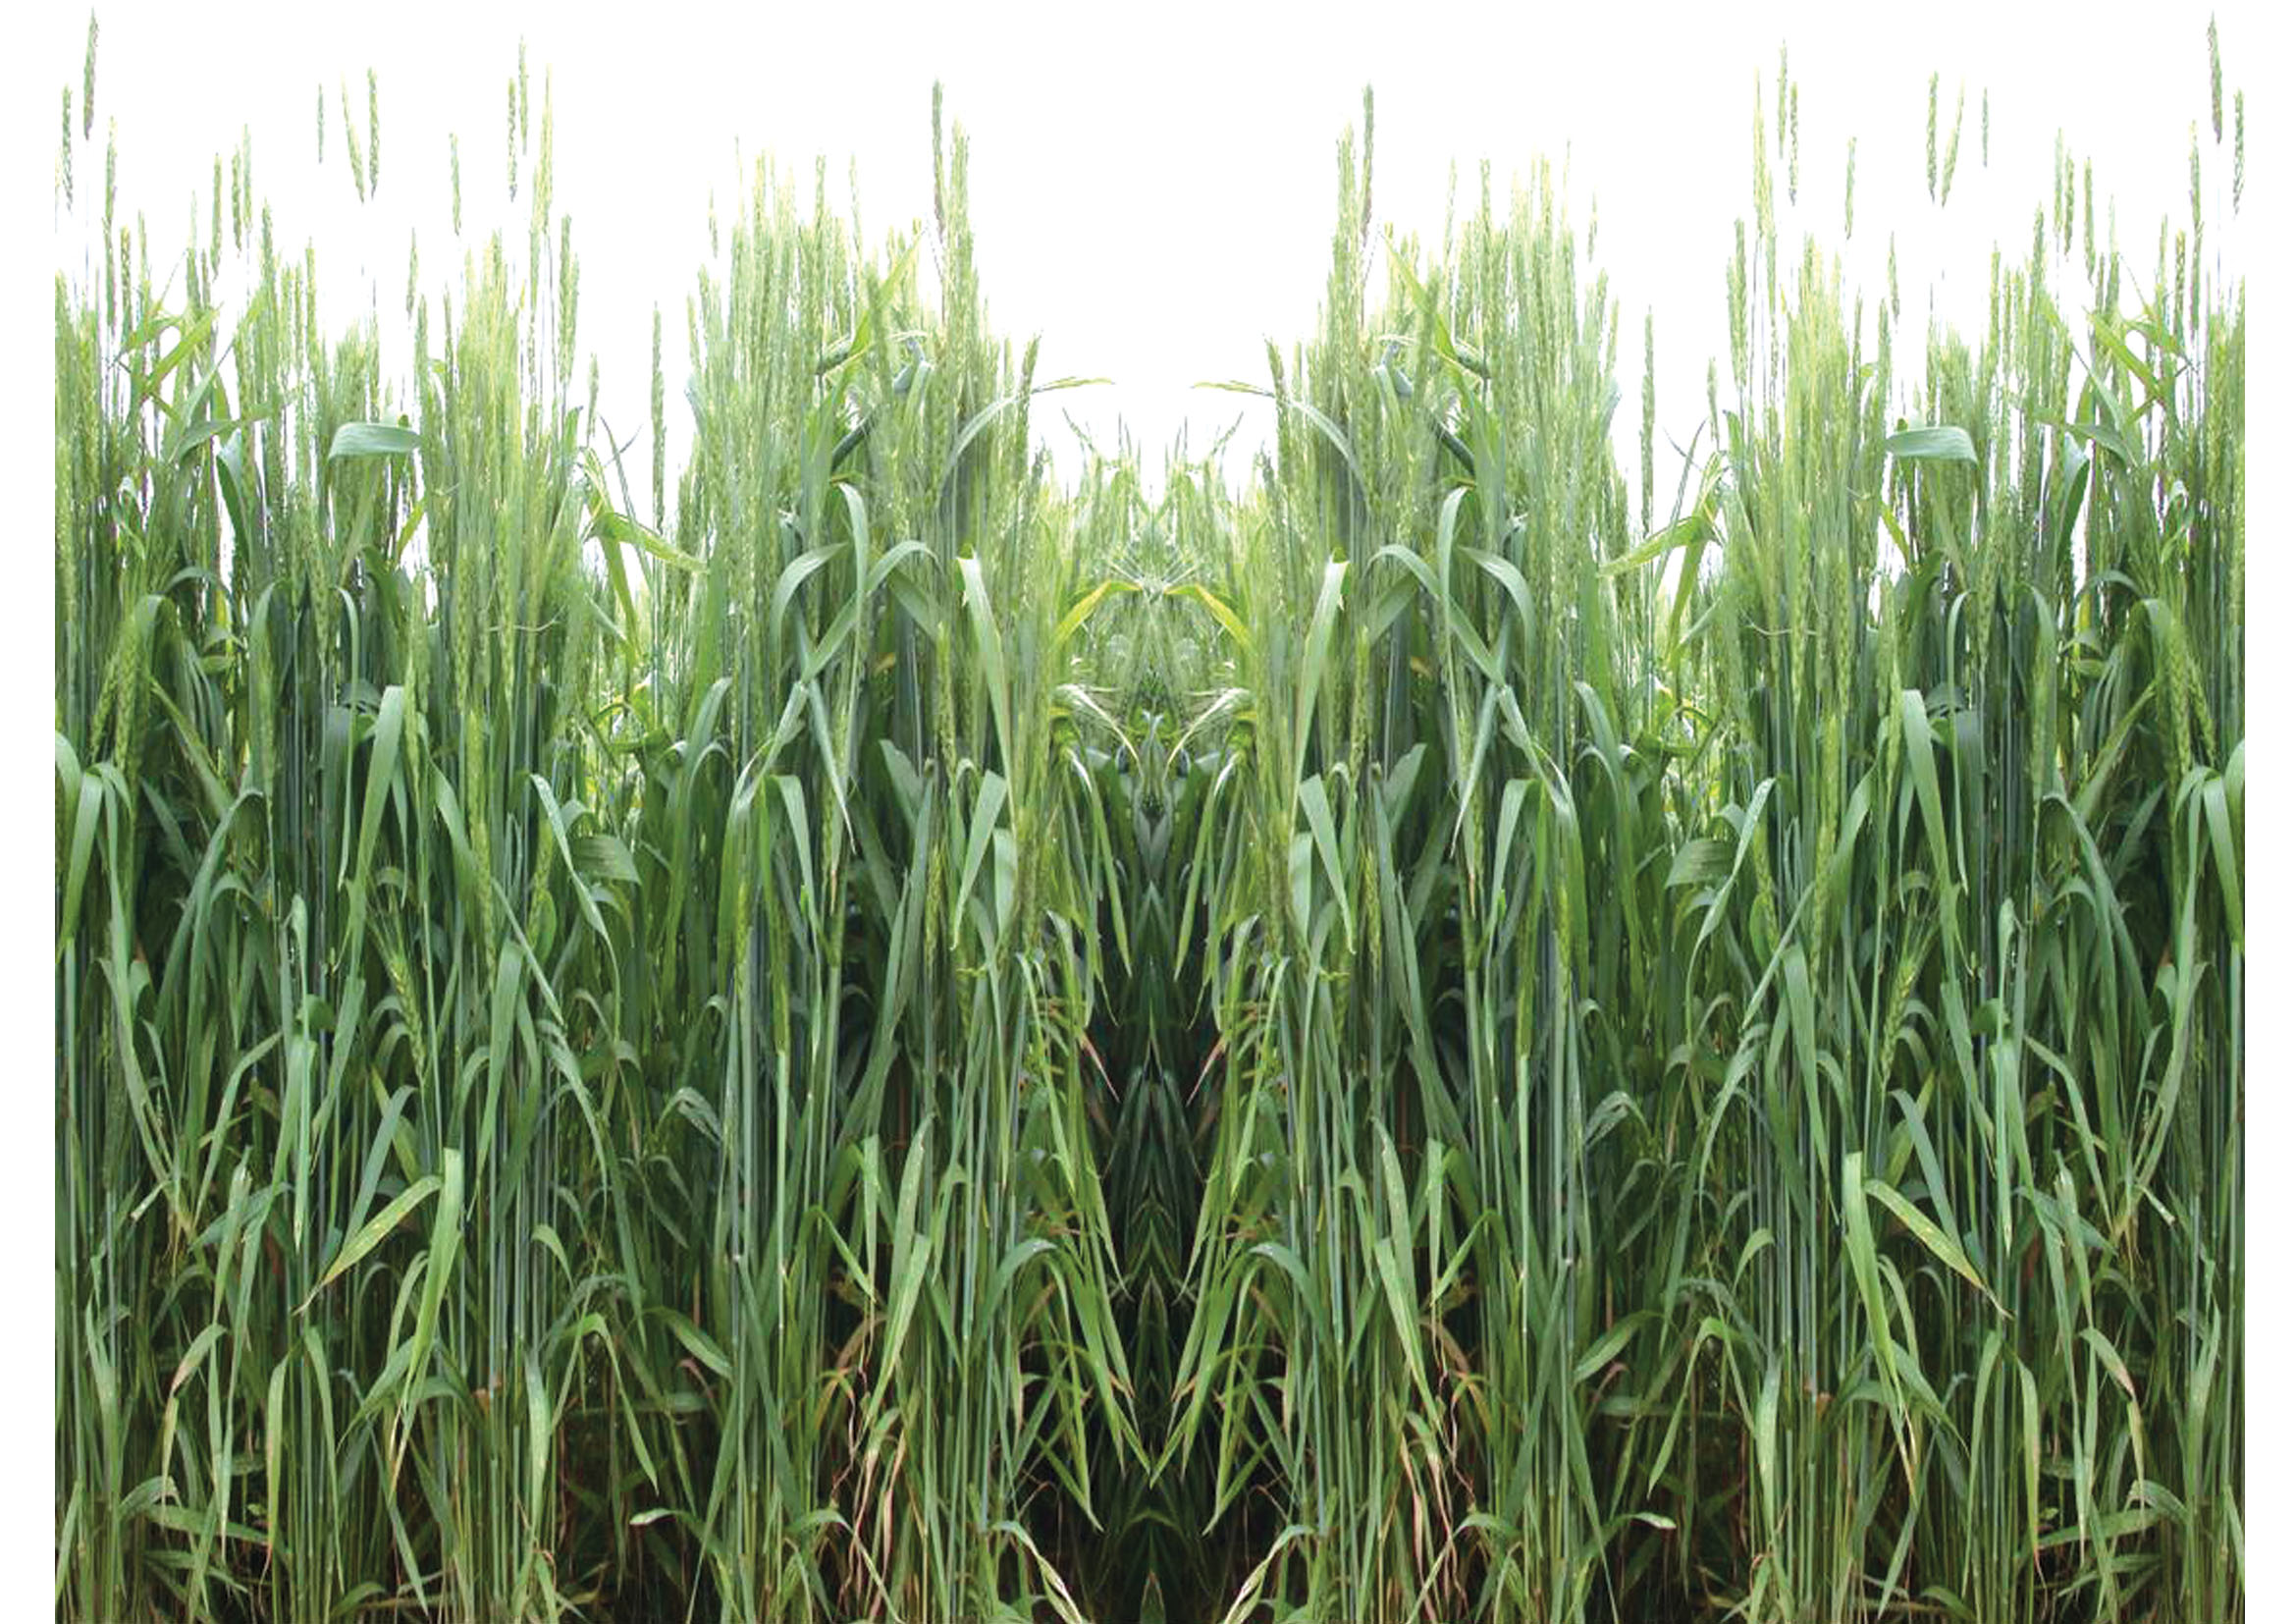 Images of food crops in india. Agriculture in India. 2019 ...